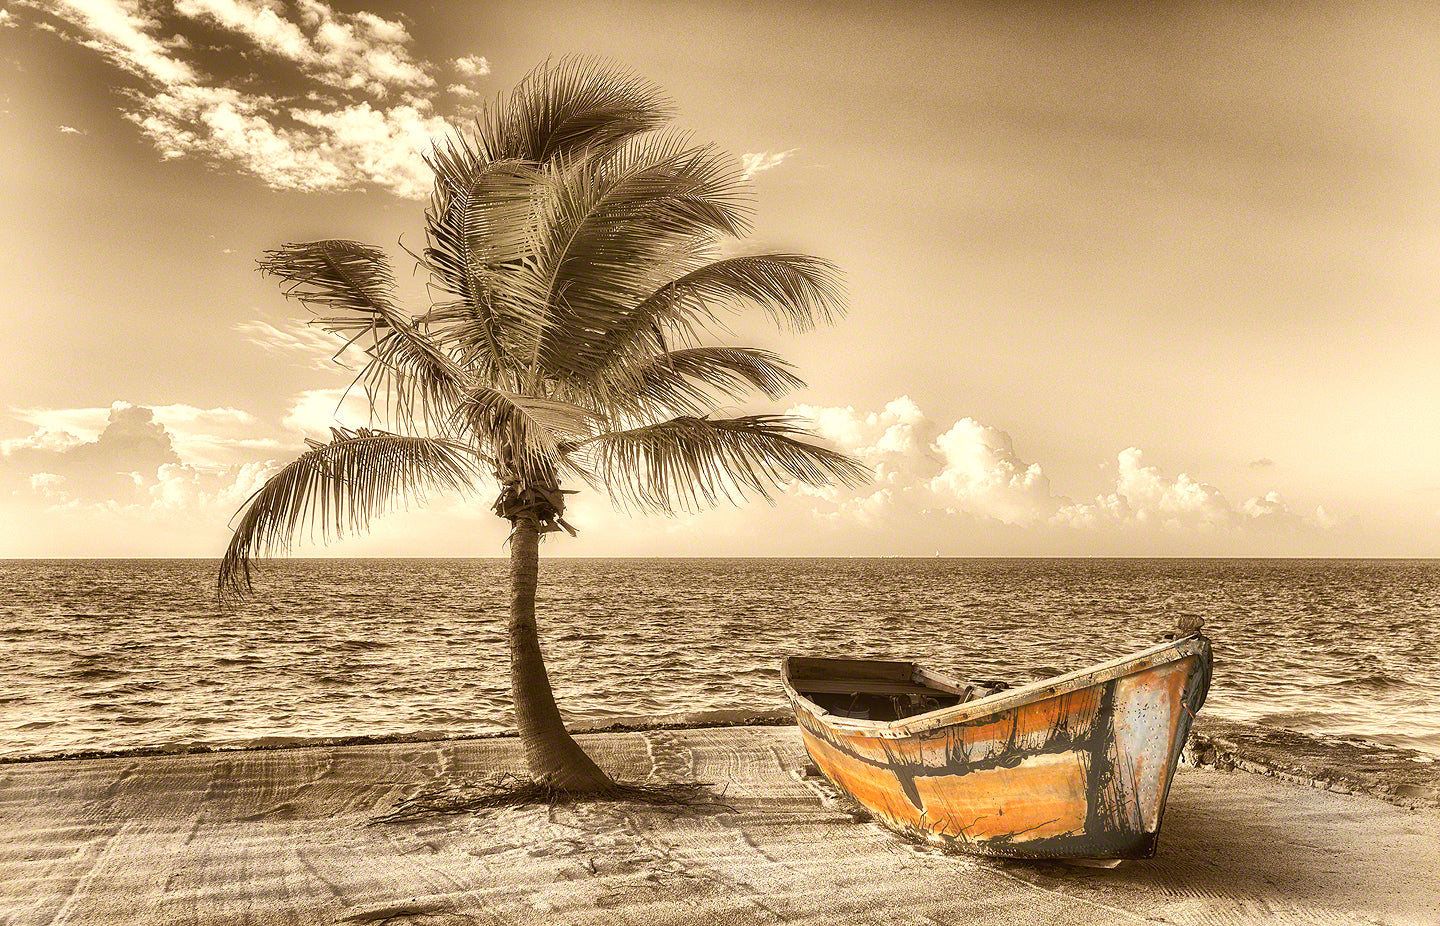 A photo of an old Cuban boat used to escape to America on the beach in Islamorada, Florida